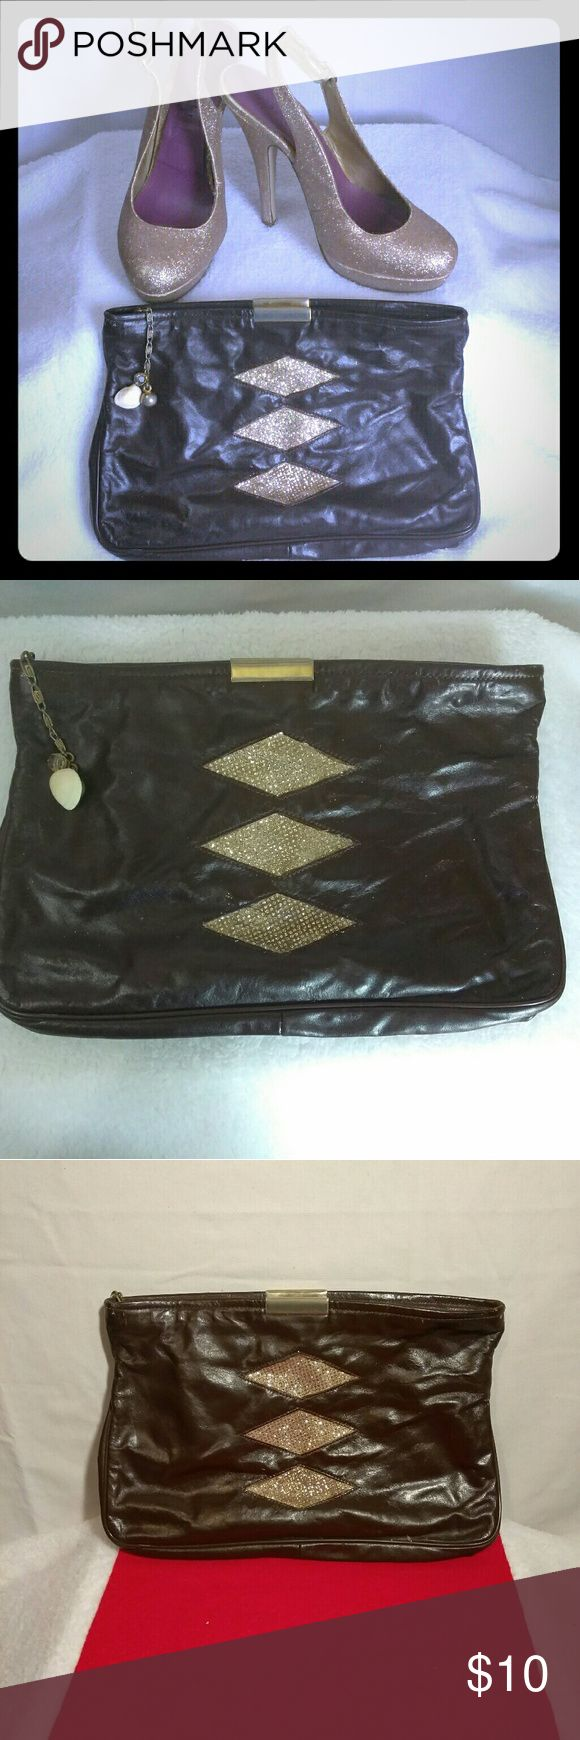 Glam Style Brown Clutch Bag I took a worn out clutch bag and created a new simple yet glamorous look. Purse $10. Shoes are not for sell. This product is a pre-owned item. It may some blemishes. Bags Clutches & Wristlets